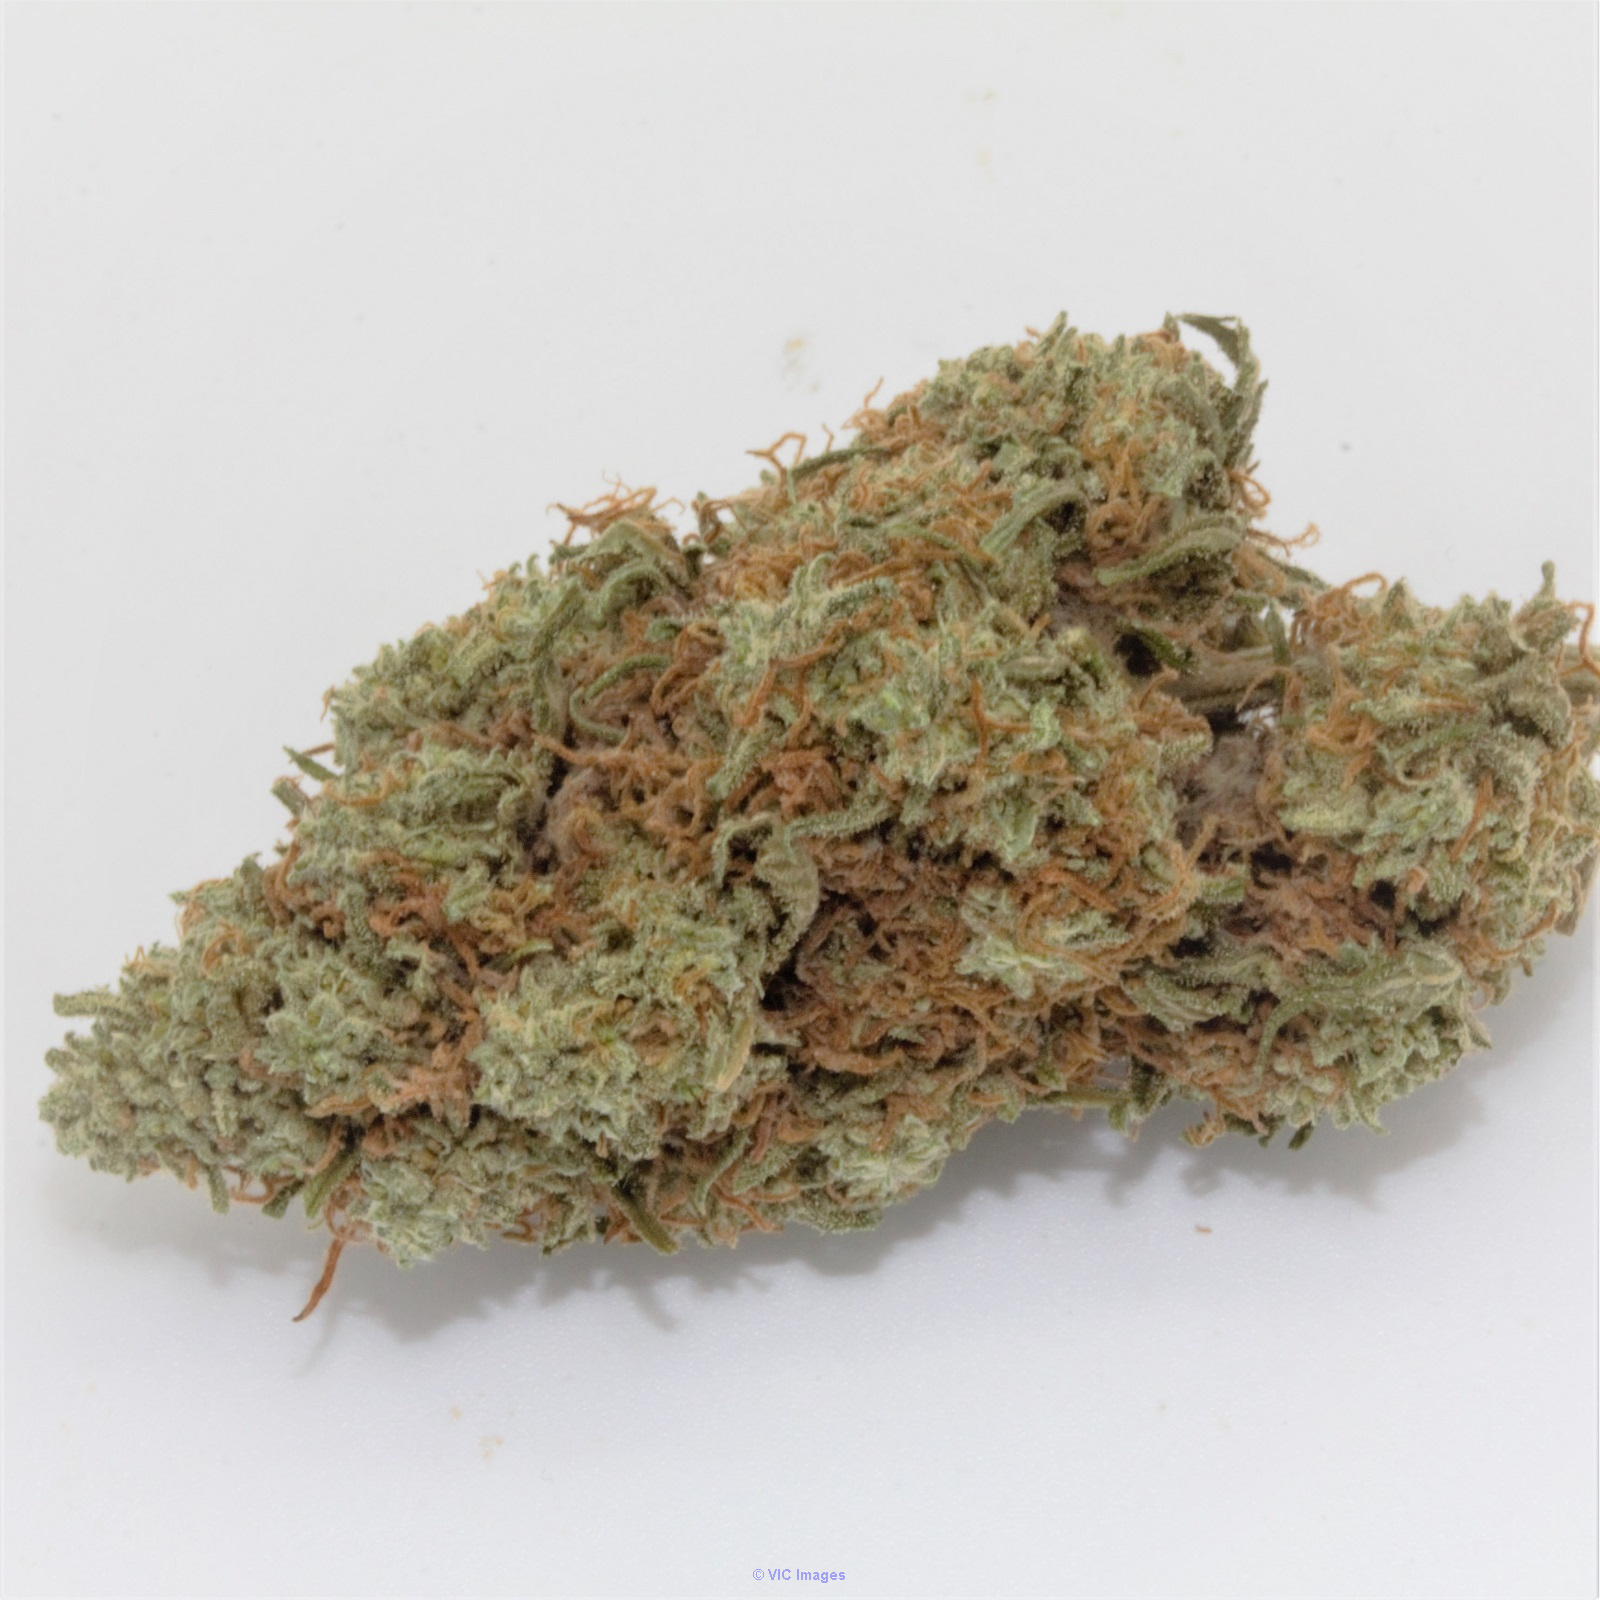 Chemdawg – ON SALE ($125 / OZ) Calgary, Alberta, Canada Annonces Classées